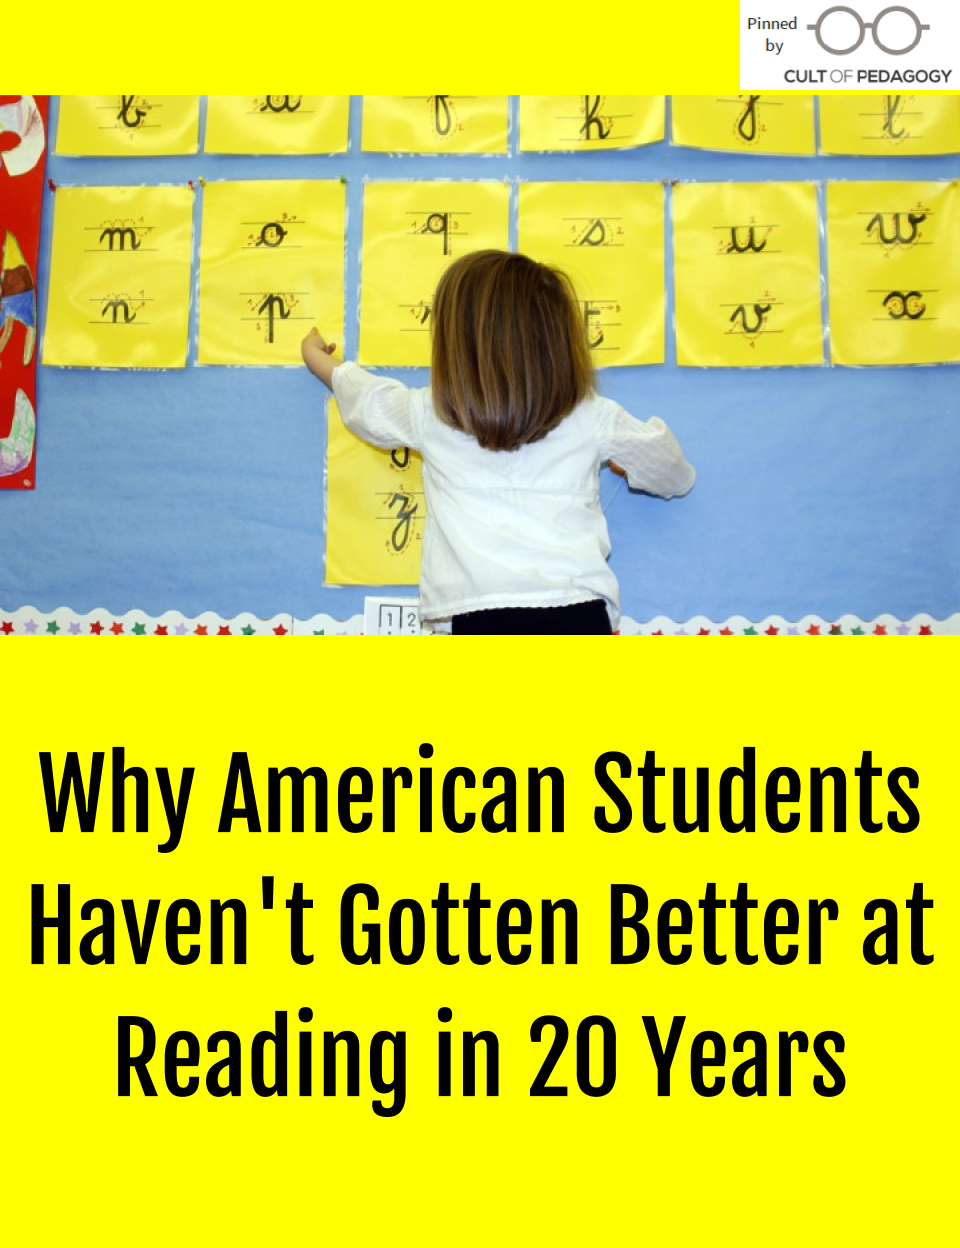 Why American Students Havent Gotten >> Why American Students Haven T Gotten Better At Reading In 20 Years